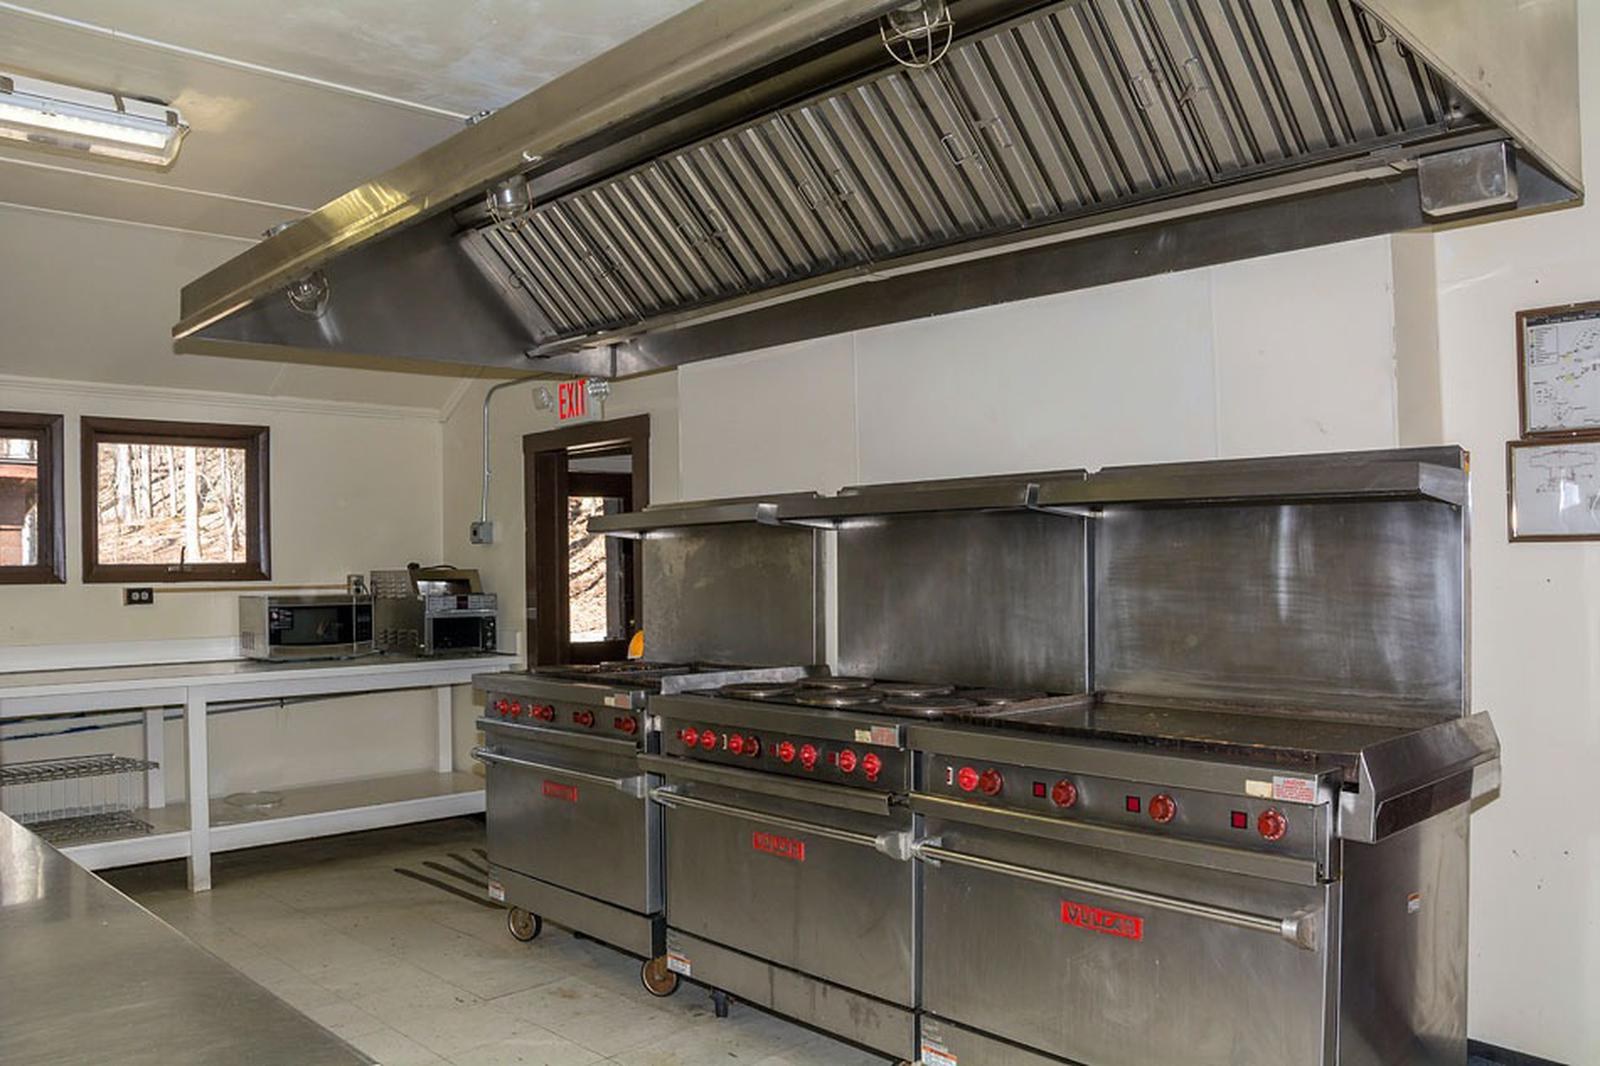 Ovens and Ranges in the Misty Mount Dining Hall Kitchen